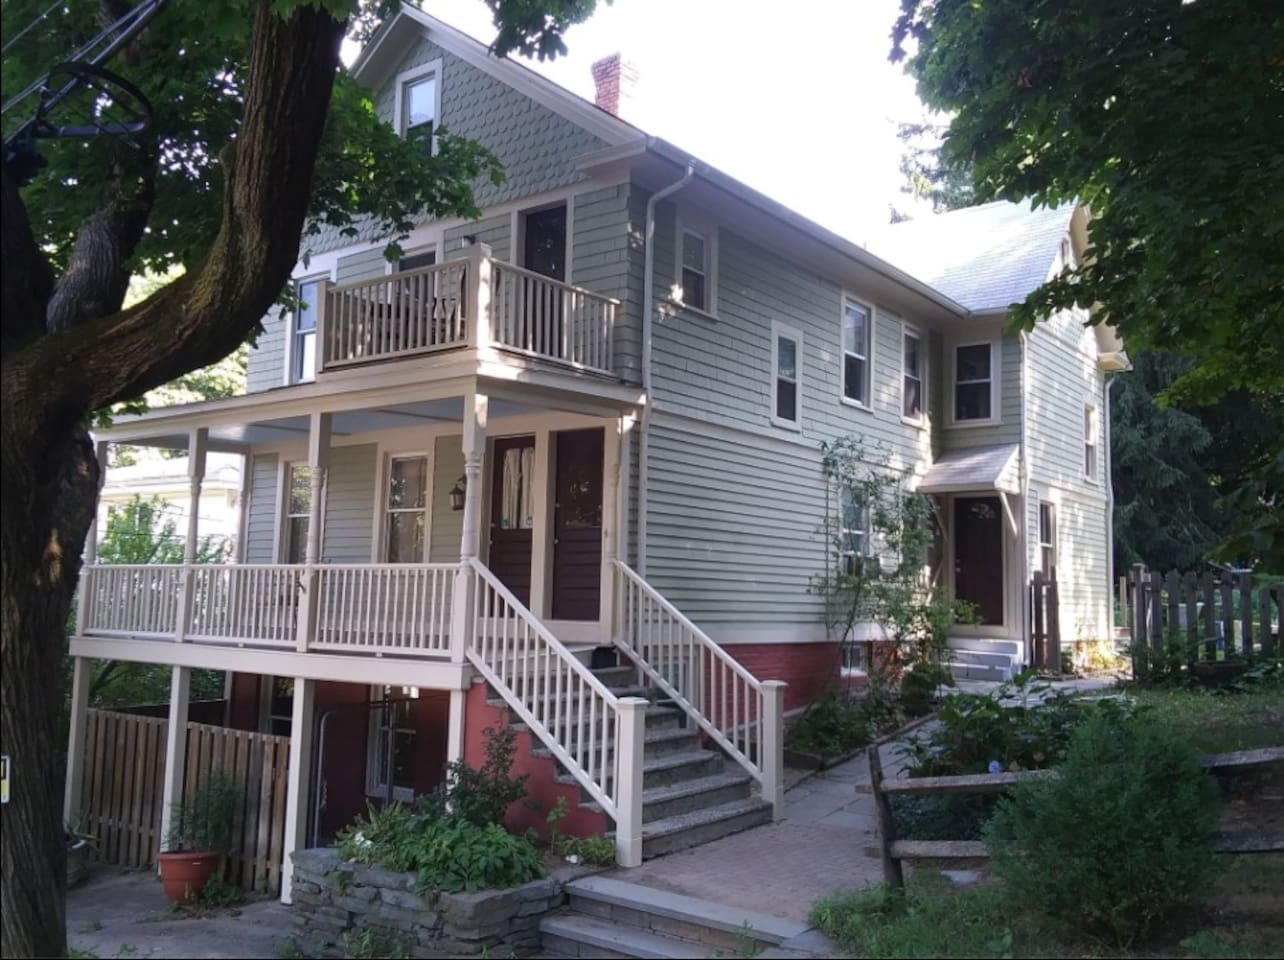 Classic oysterman's house in quaint maritime neighborhood minutes from Yale and downtown.